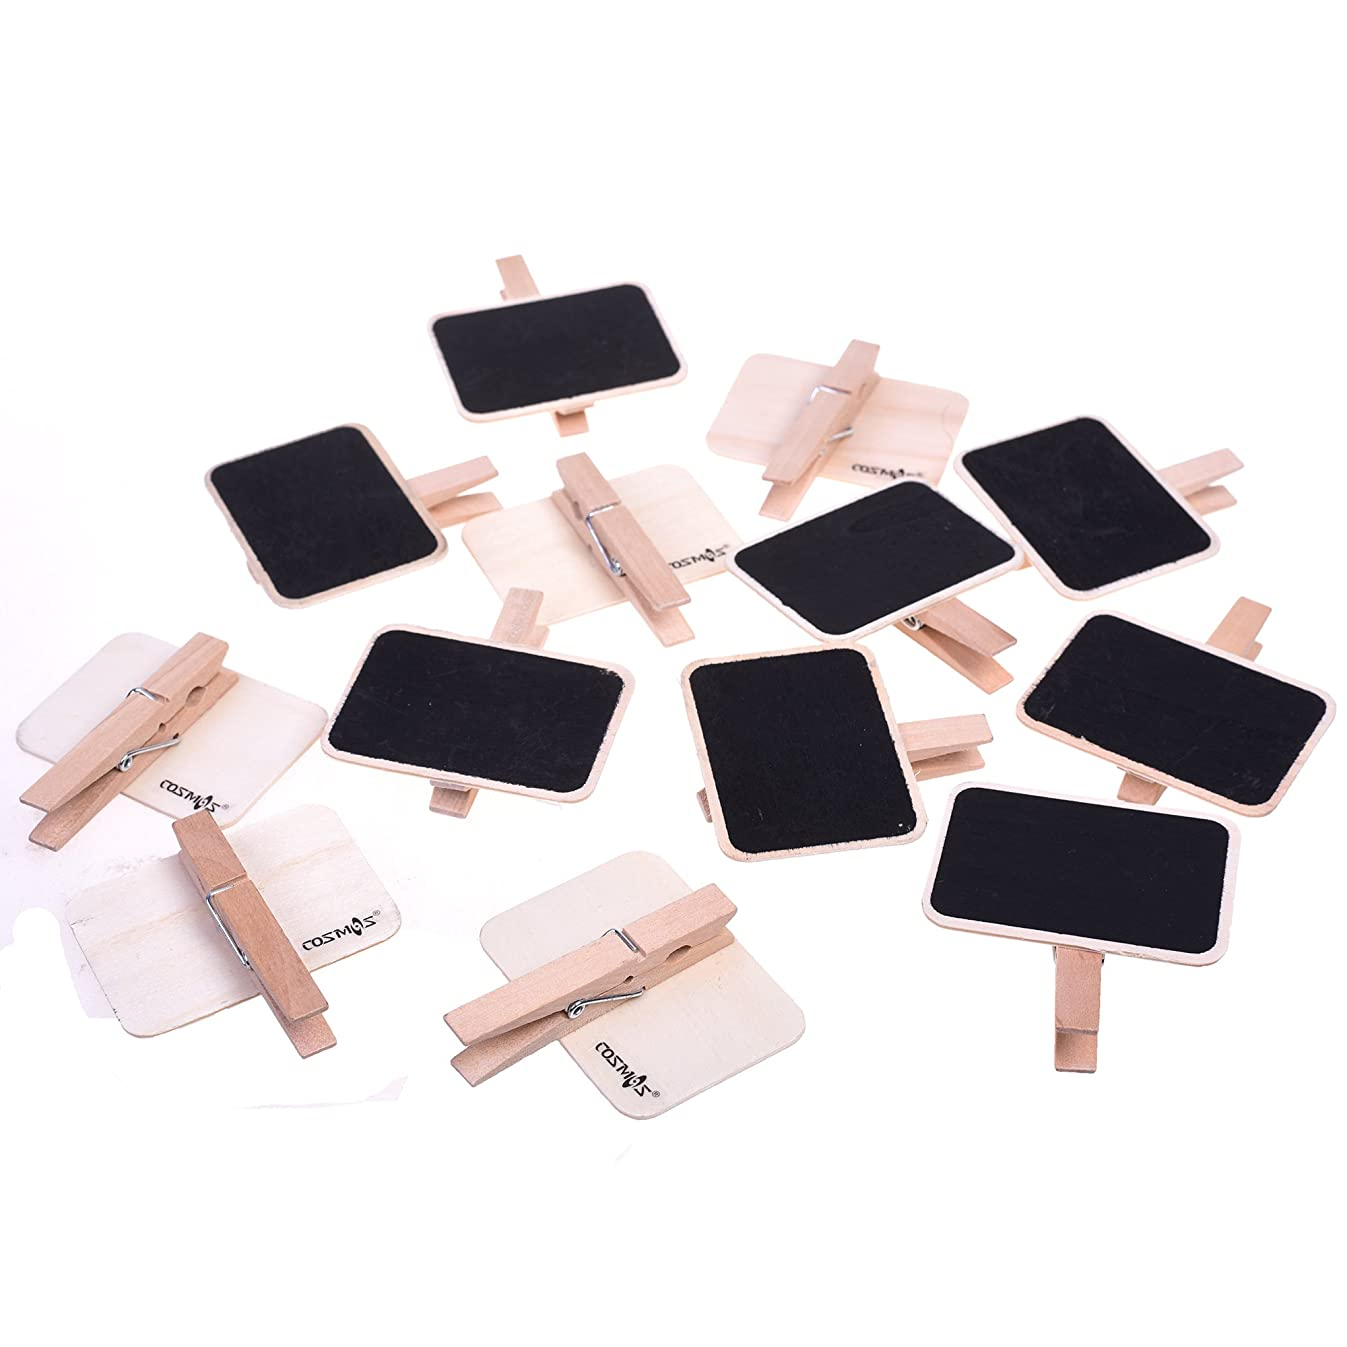 COSMOS Pack of 12 PCS Erasable Wooden Chalkboard Label Clips Message Memo Boards Clips